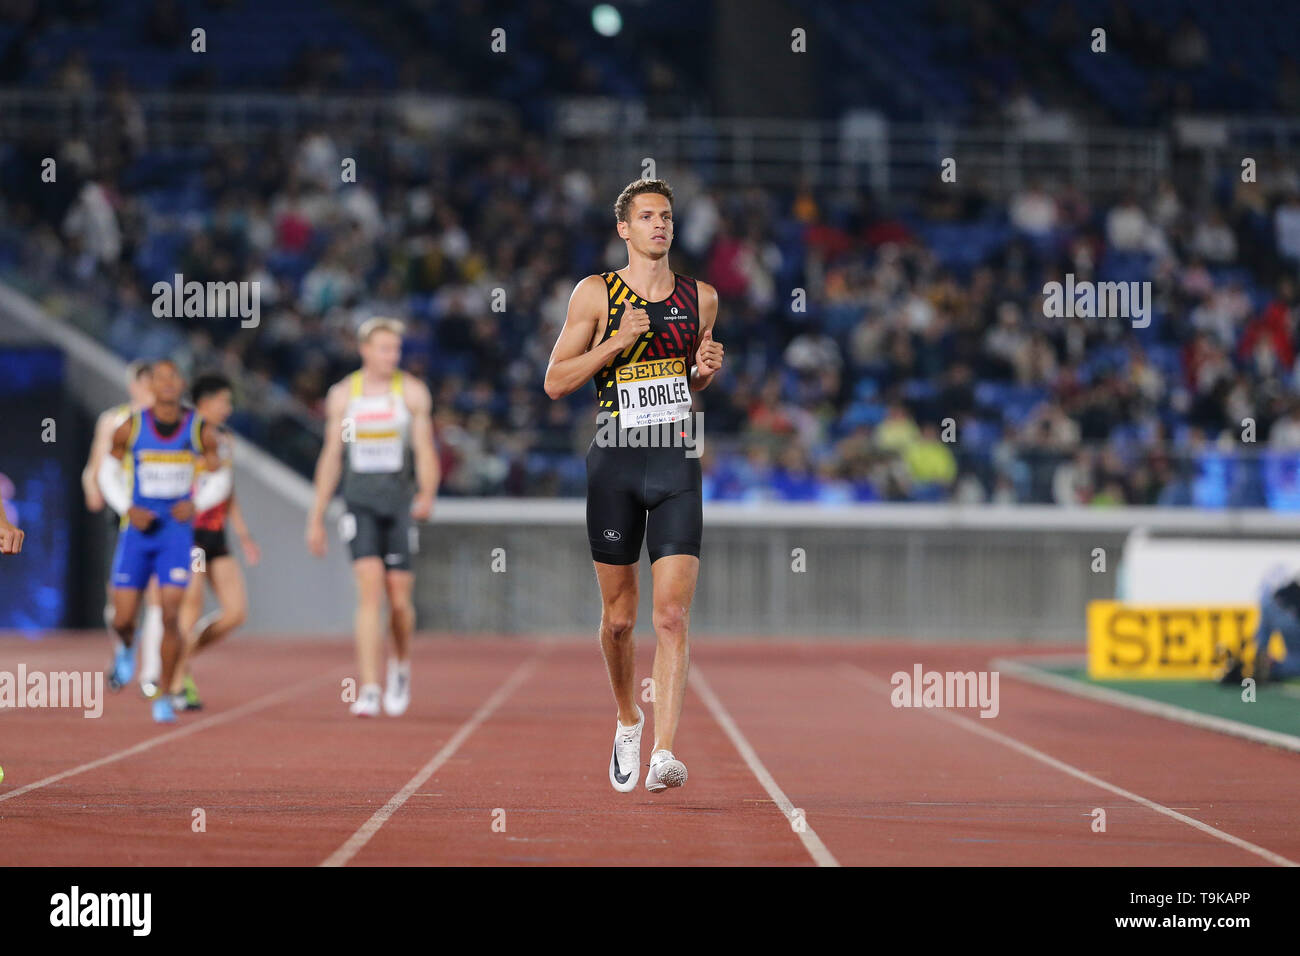 YOKOHAMA, JAPAN - MAY 10: Dylan Borlée of Belgium during Day 1 of the 2019 IAAF World Relay Championships at the Nissan Stadium on Saturday May 11, 2019 in Yokohama, Japan. (Photo by Roger Sedres for the IAAF) - Stock Image